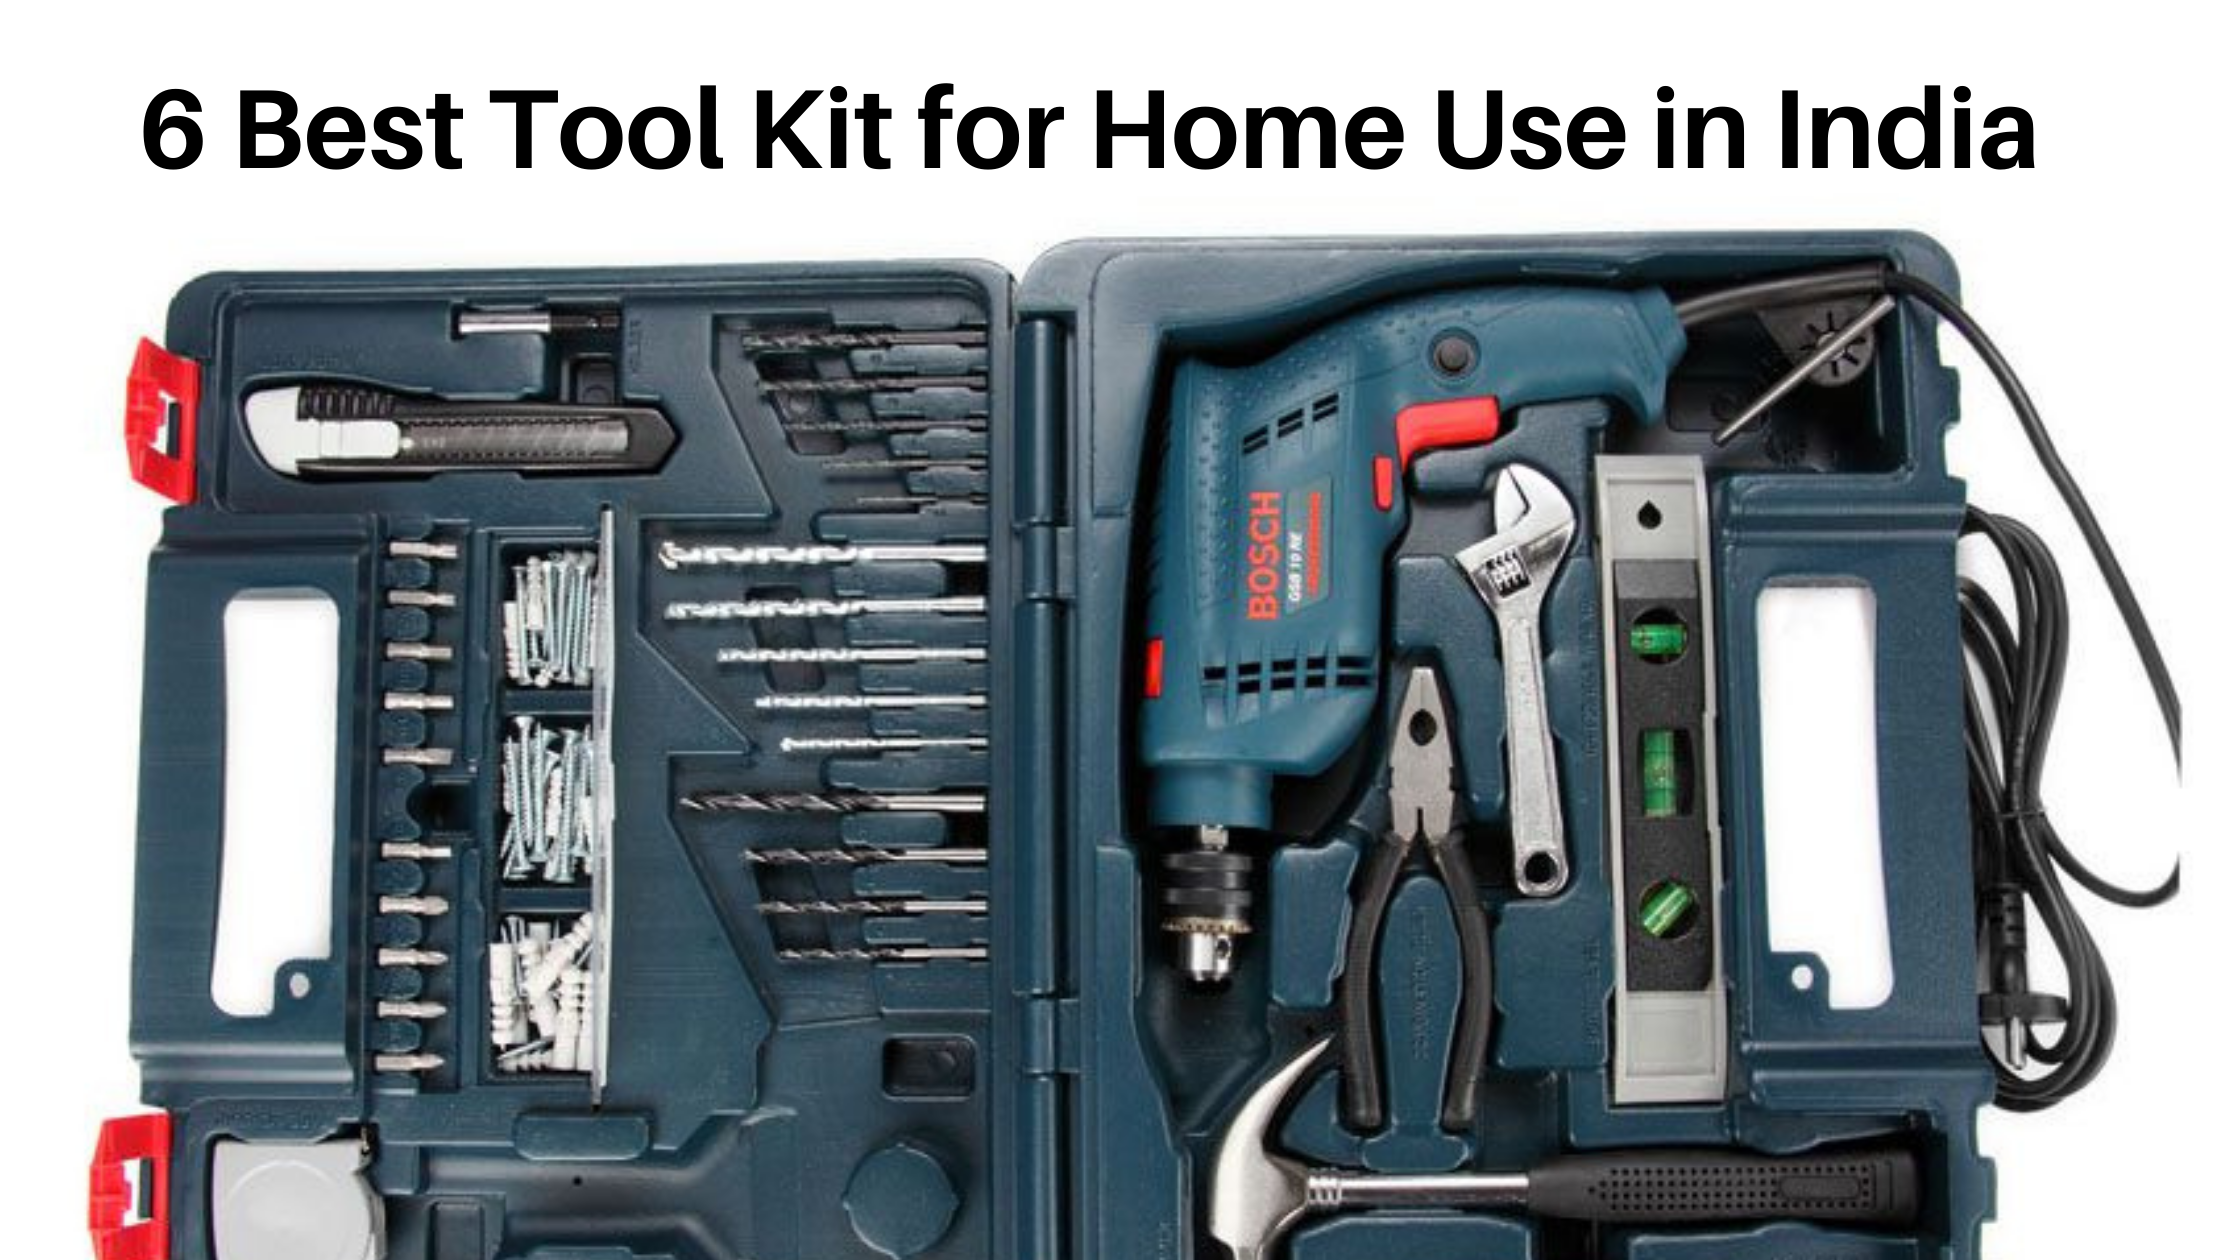 6 Best Tool Kit for Home in India 2020